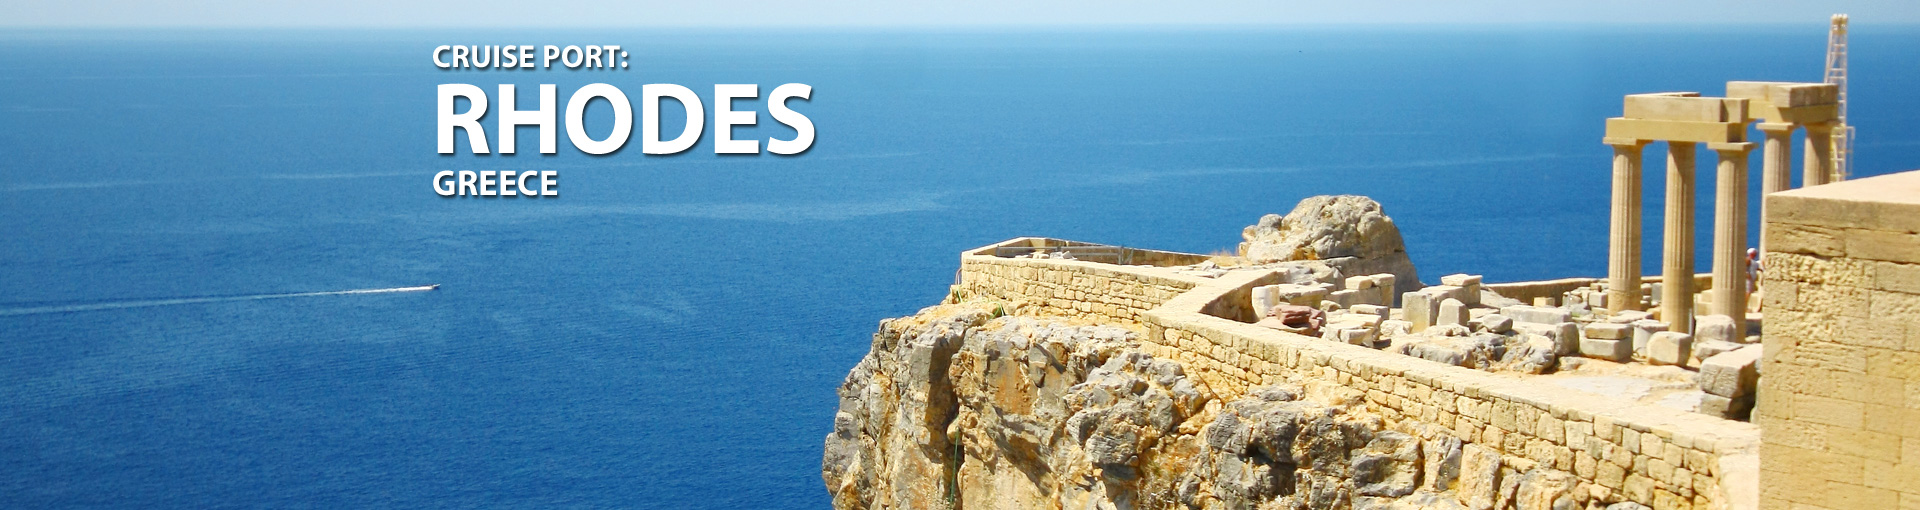 Cruises to Rhodes, Greece